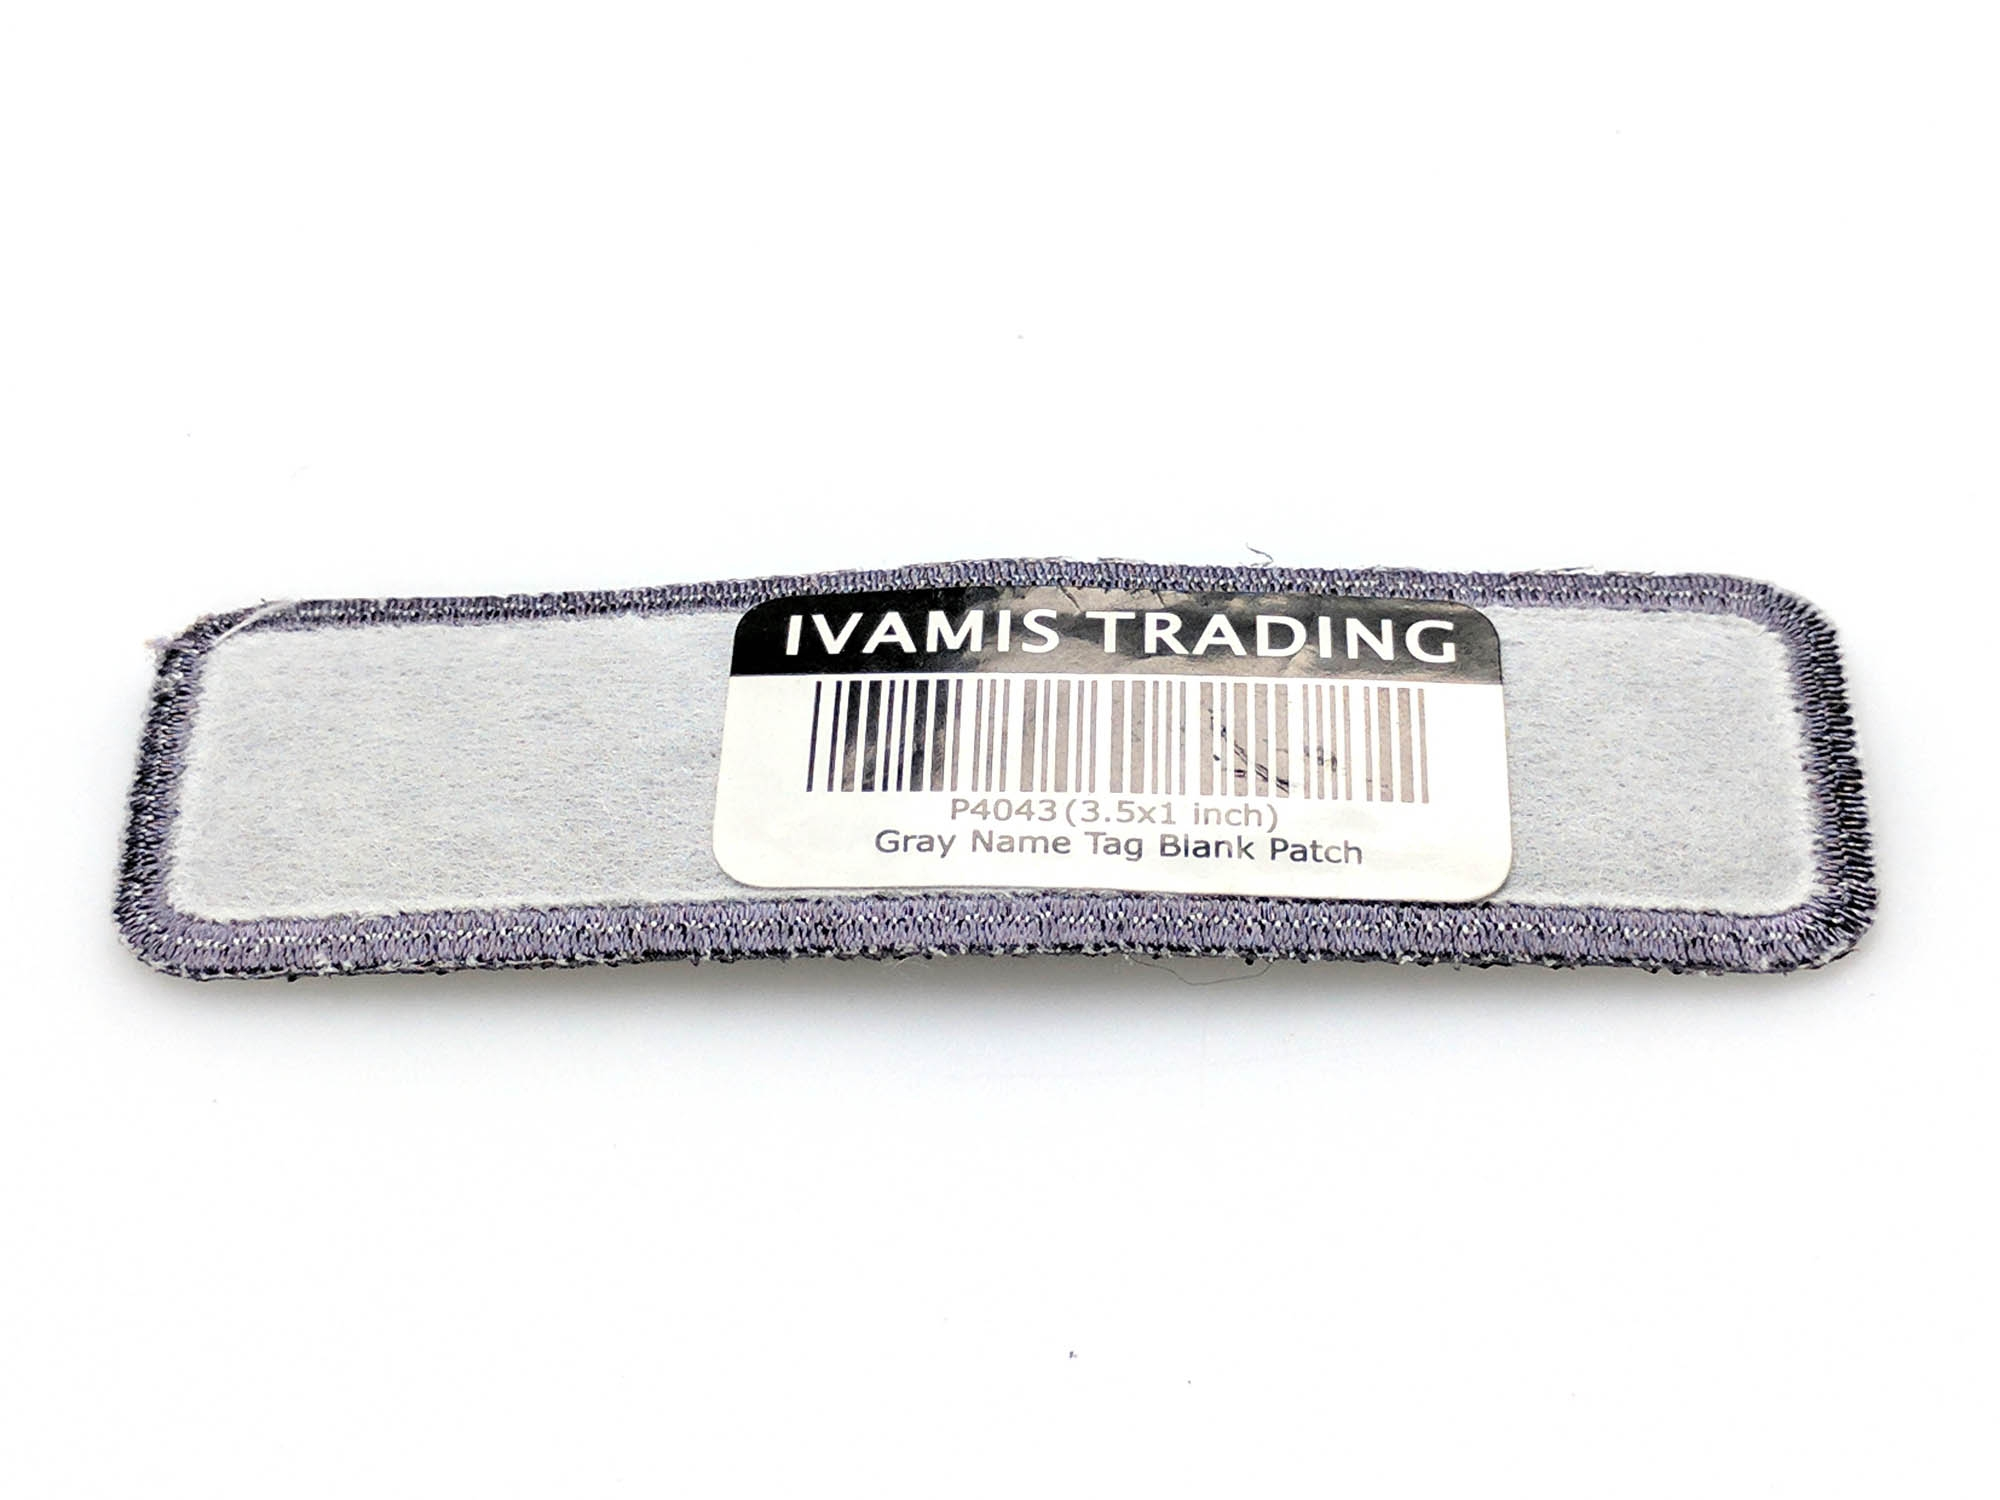 Gray name tag blank patch embroidered